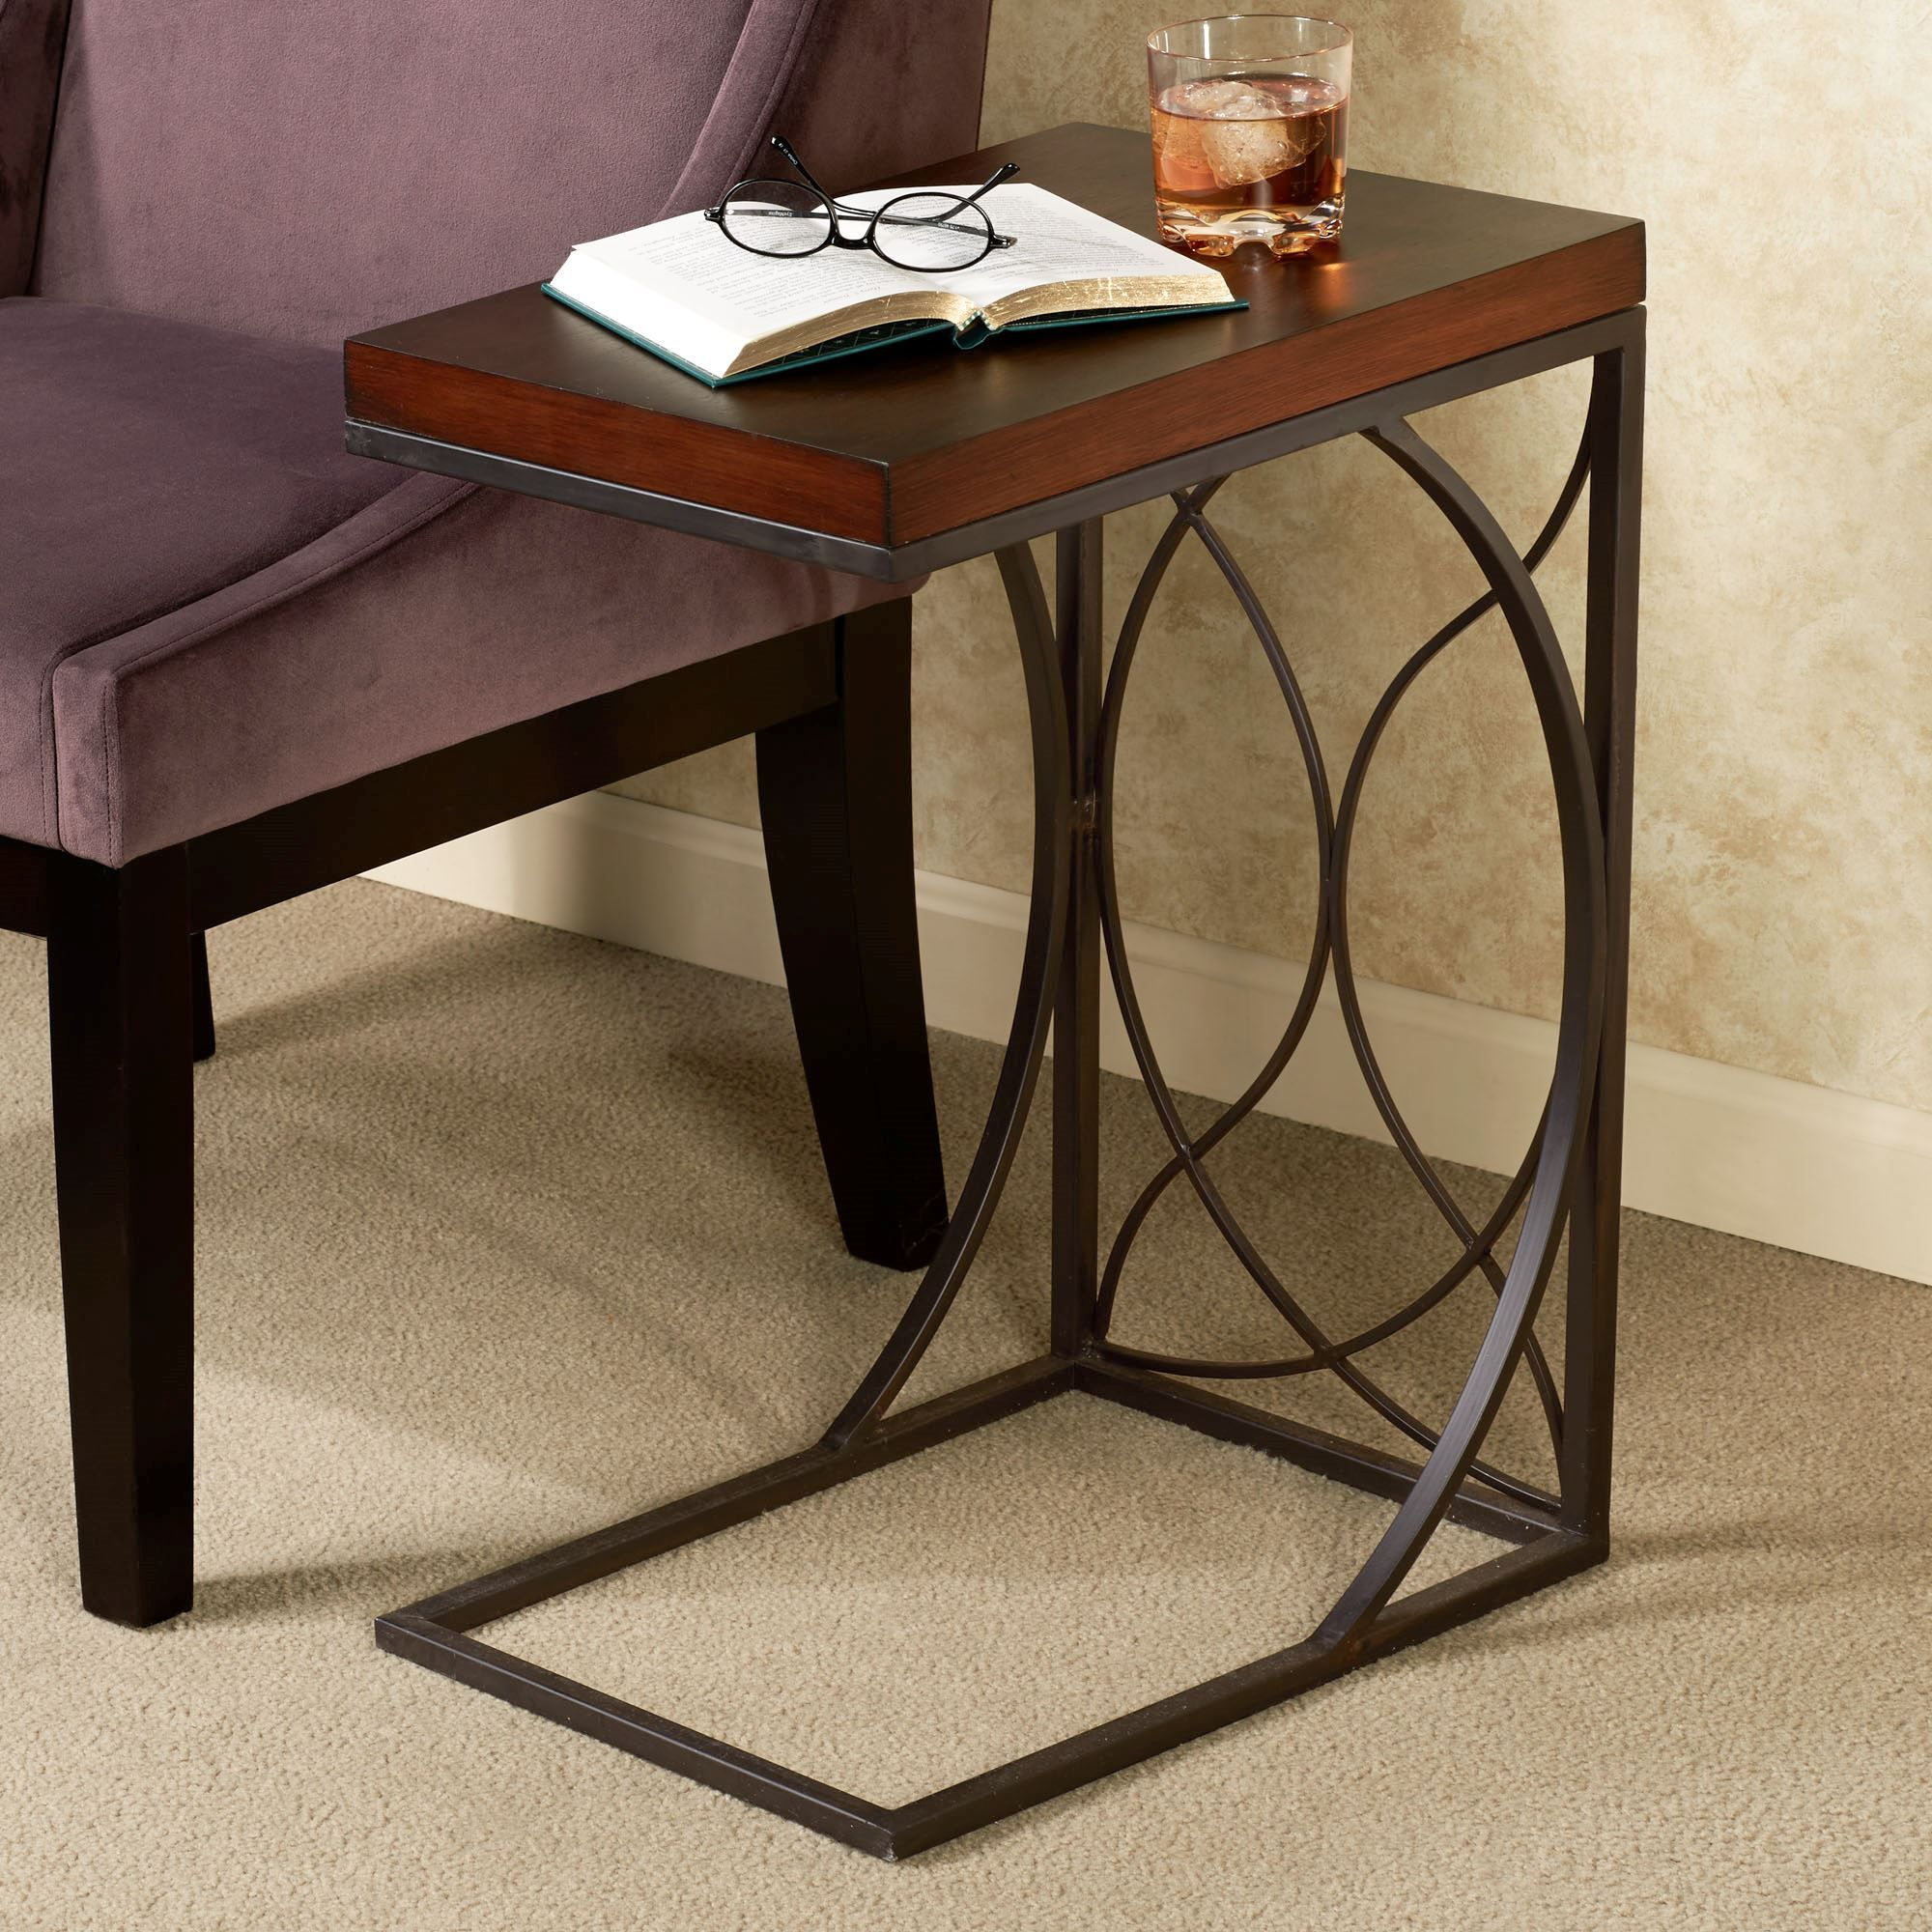 Iron Side Tables For Living Room Rustic Bronze Polished Iron C Shape Based Sofa Side Table